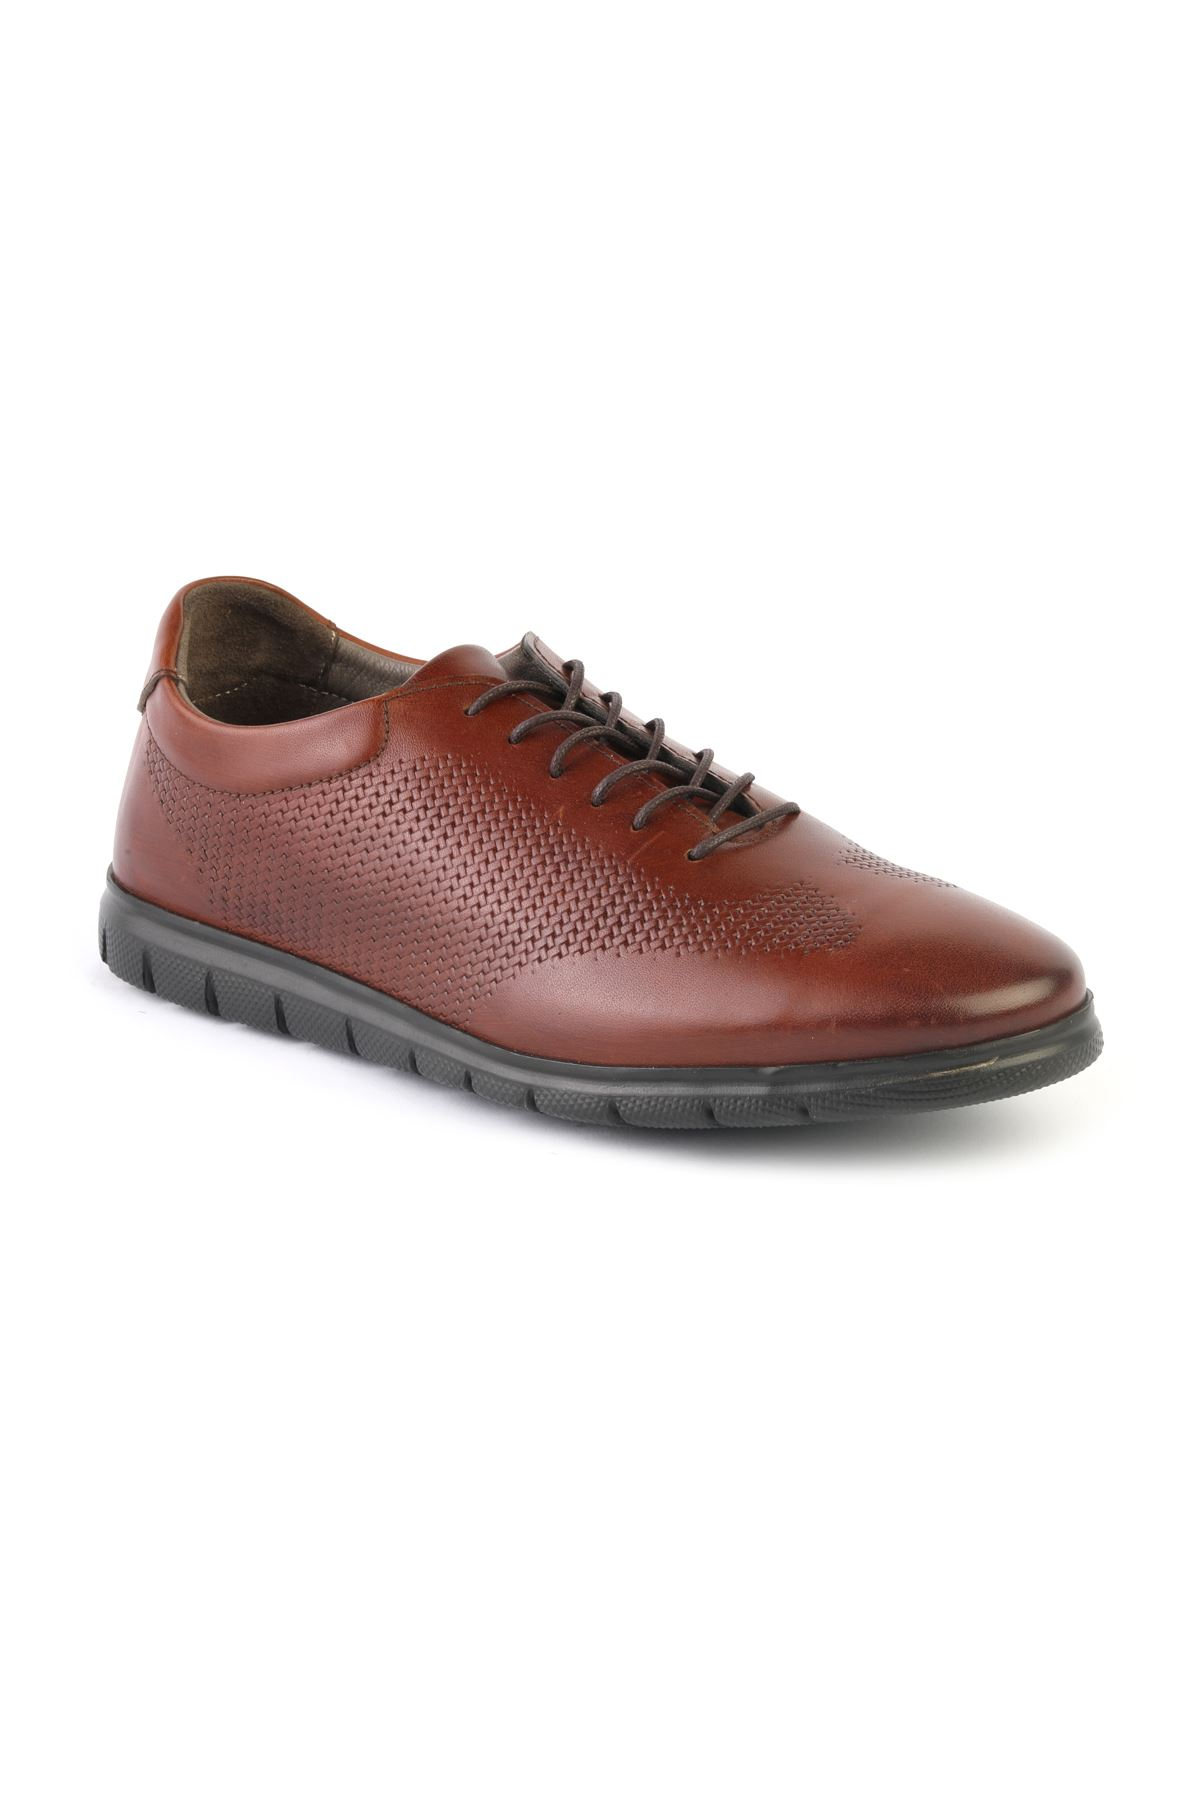 Libero T1150 Brown Casual Shoes